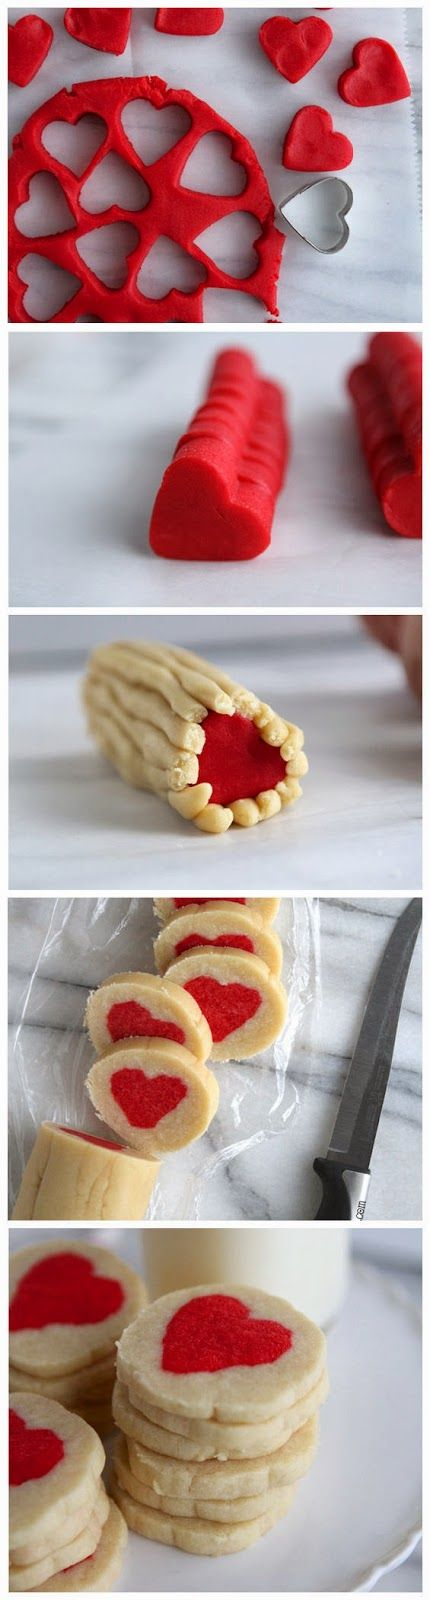 Slice n' Bake Heart Cookies ~ Method works for any shape...star for 4th, bell for Christmas, pumpkin for Halloween.